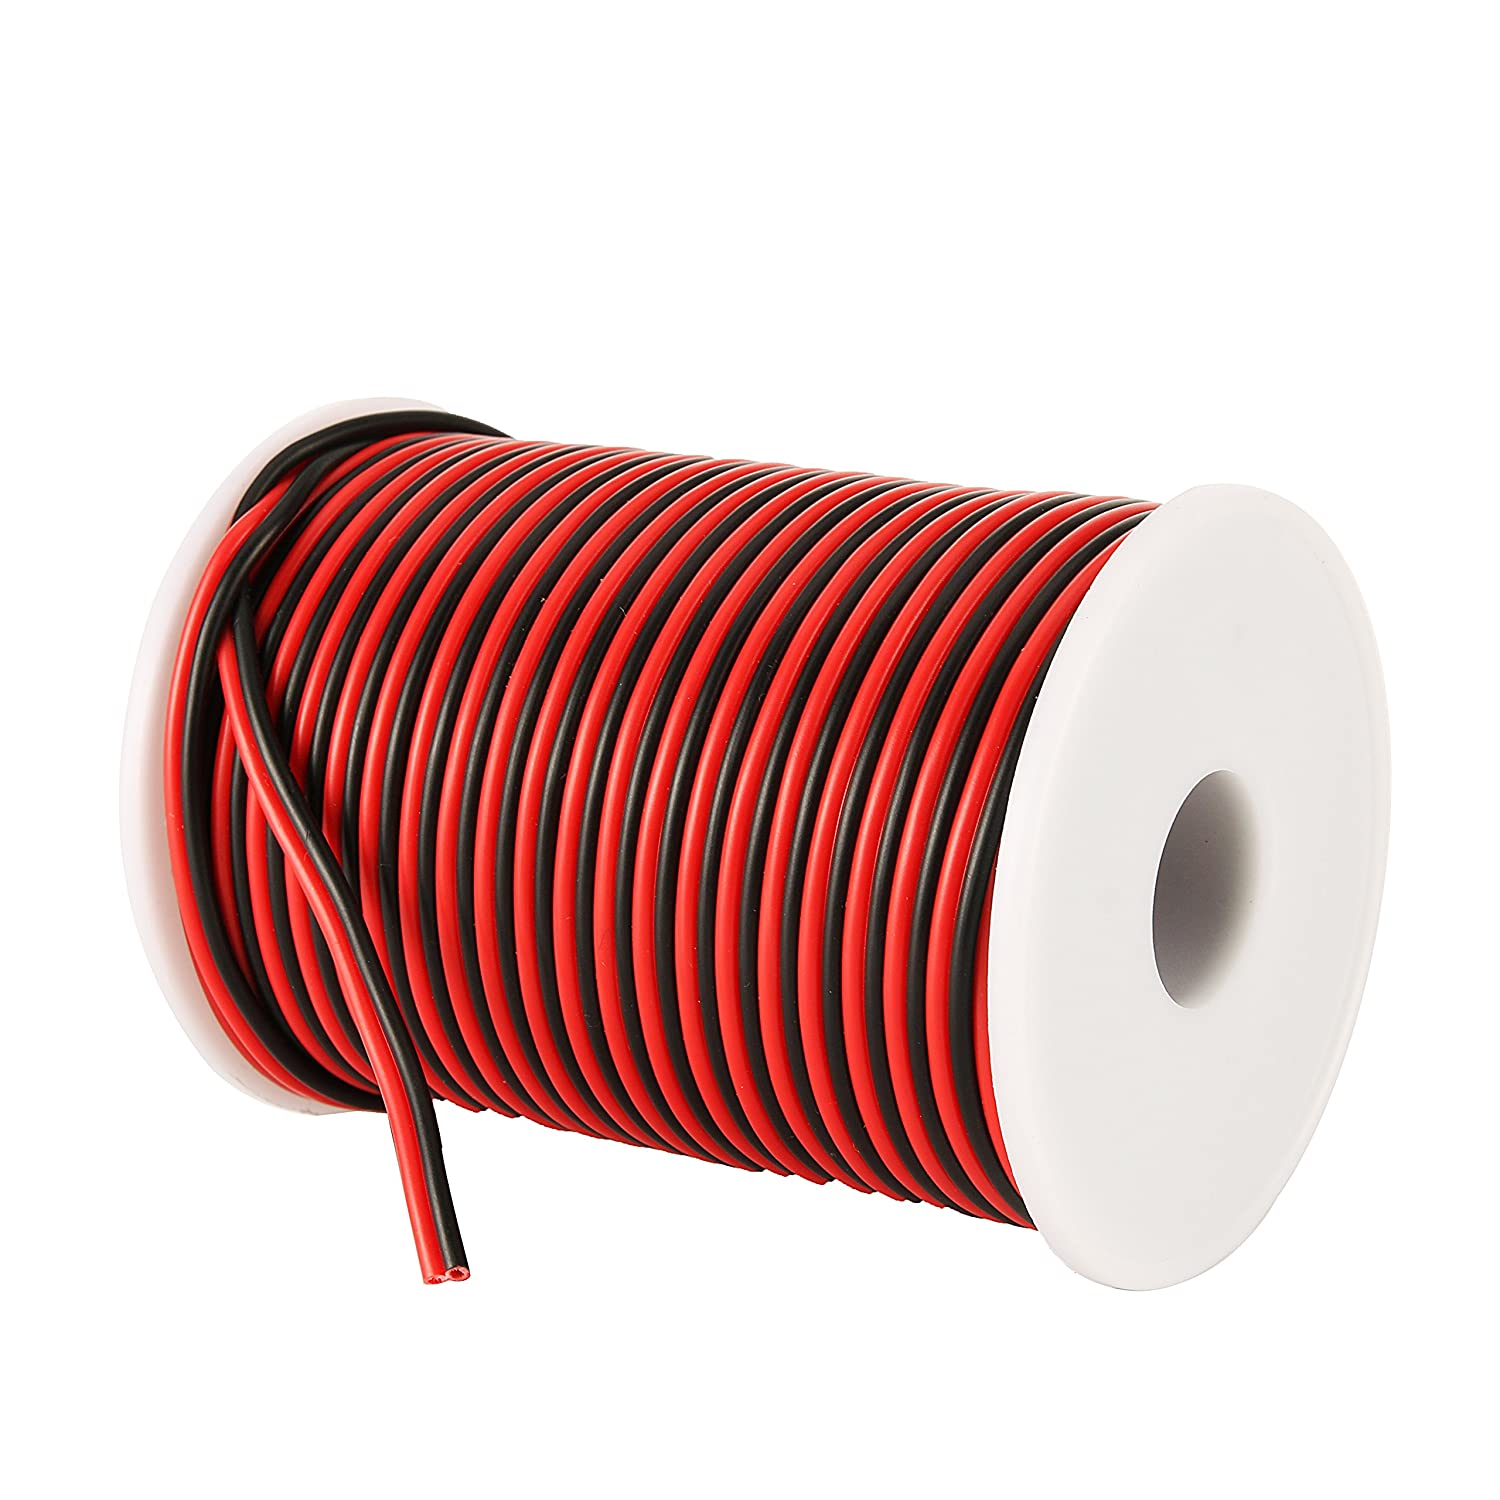 C-able 100FT 18 AWG Gauge Electrical Wire Hookup Red Black Copper ...